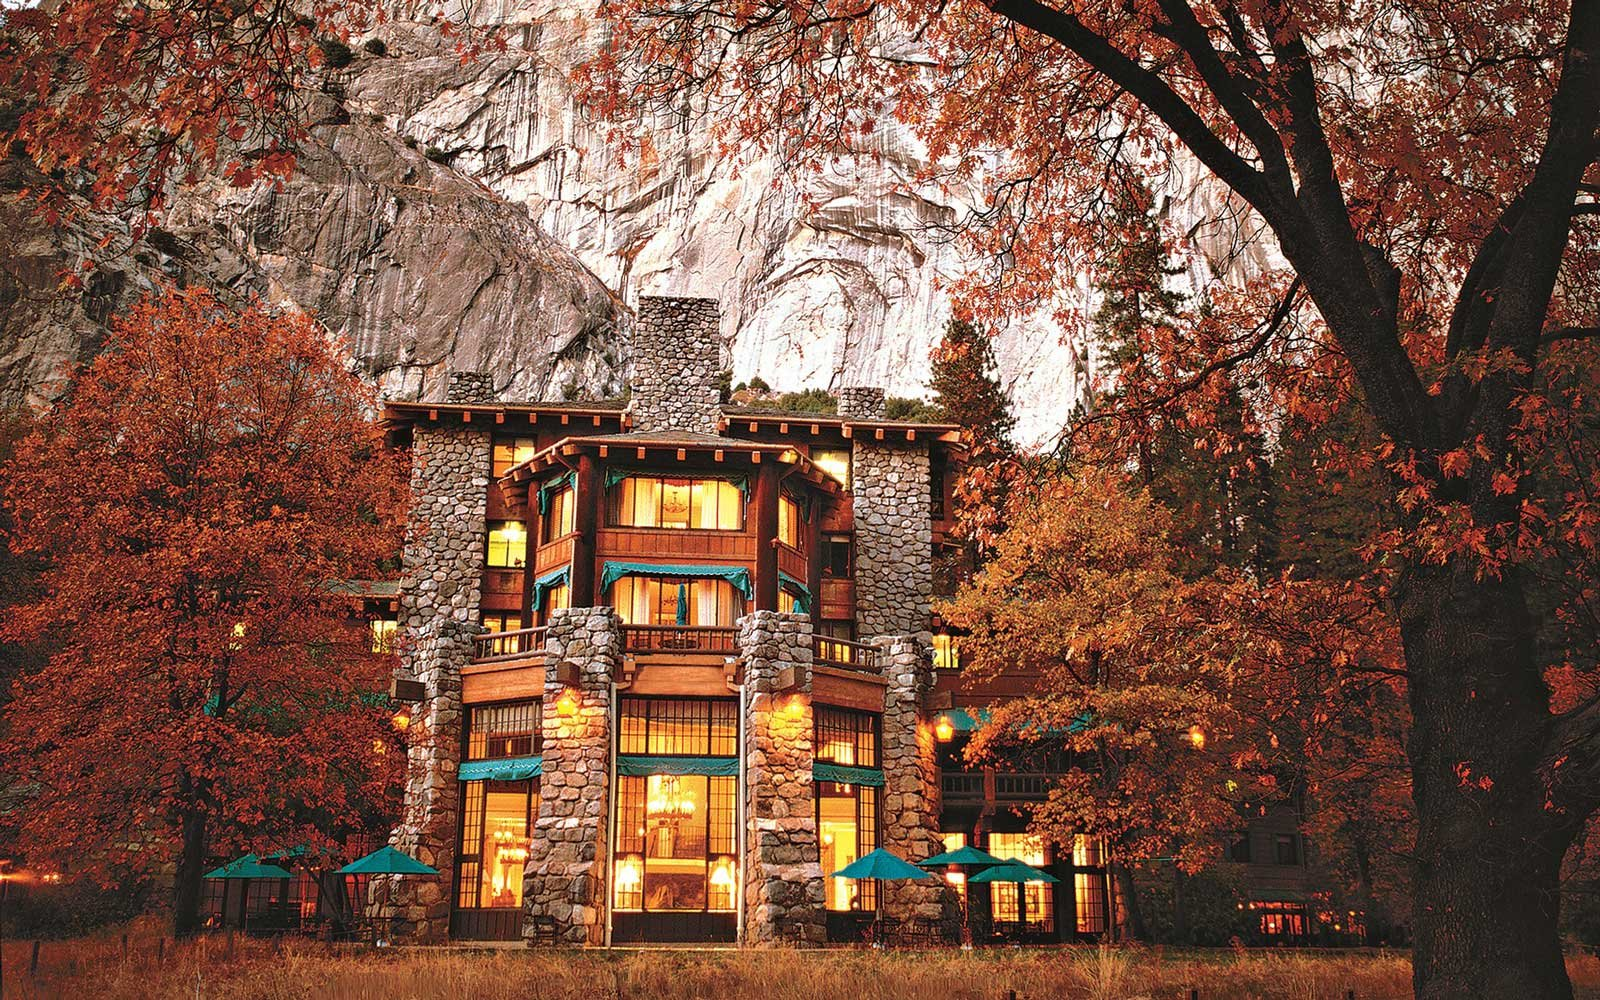 The Majestic Yosemite Hotel Yosemite National Park, California